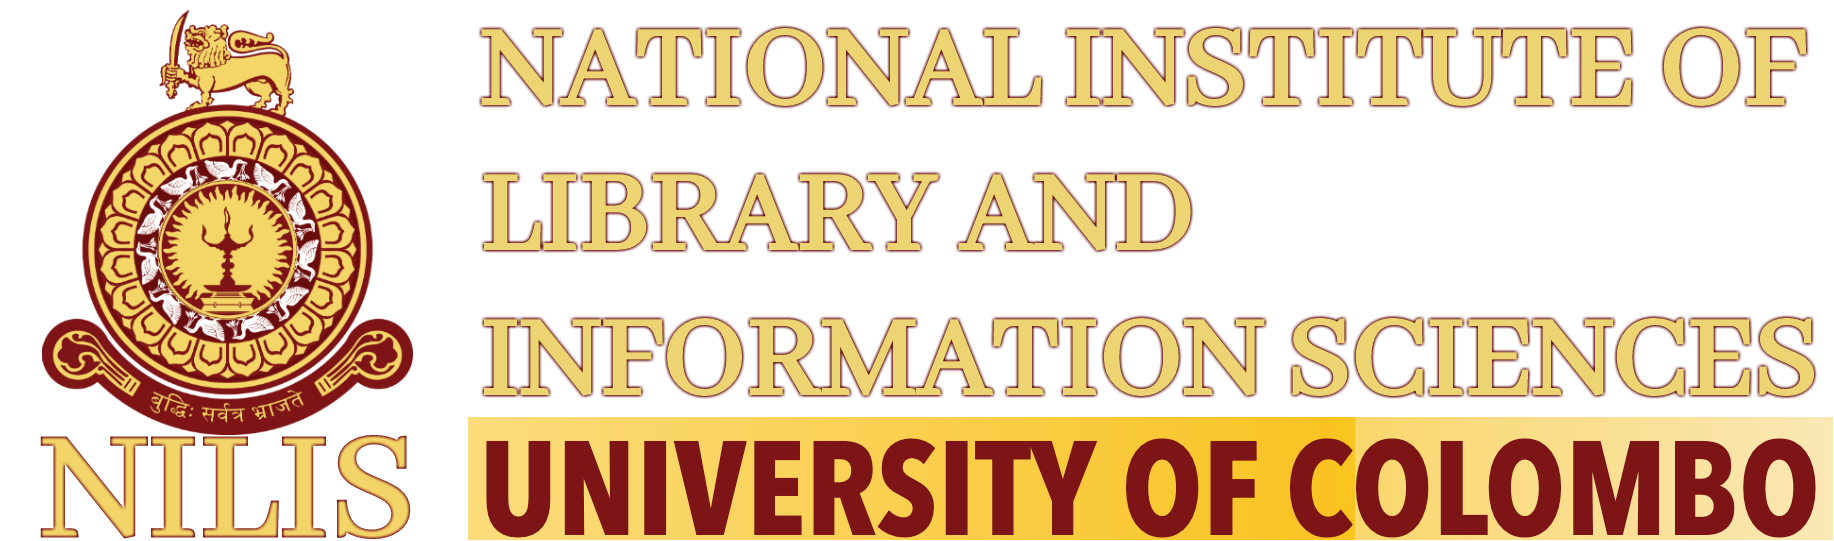 Contact Us | NILIS, University of Colombo, Sri Lanka